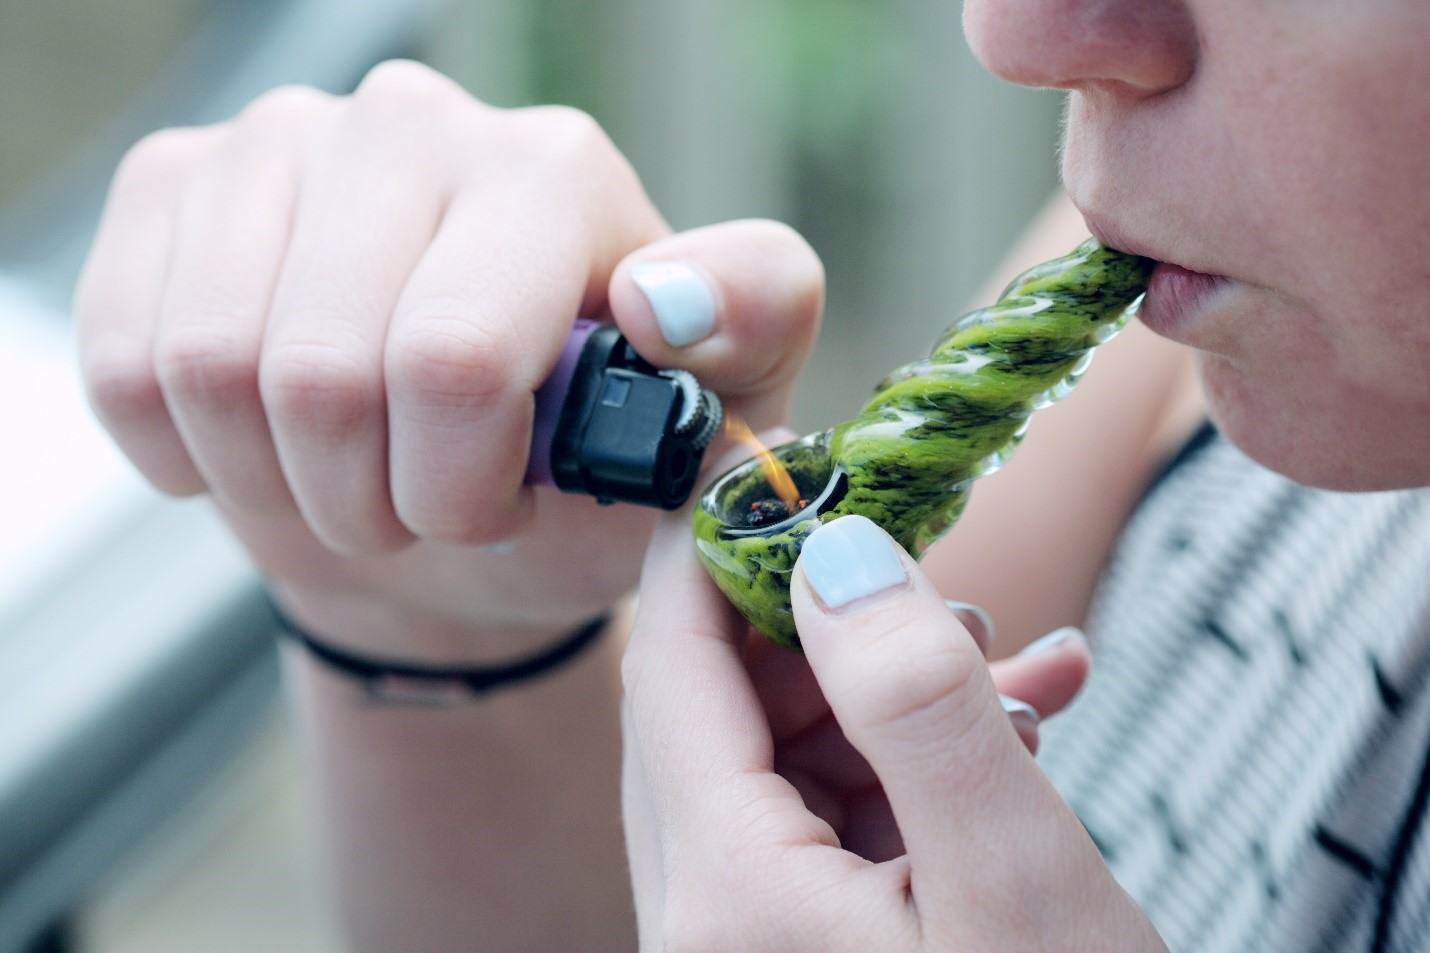 A person smoking with a green glass hand pipe